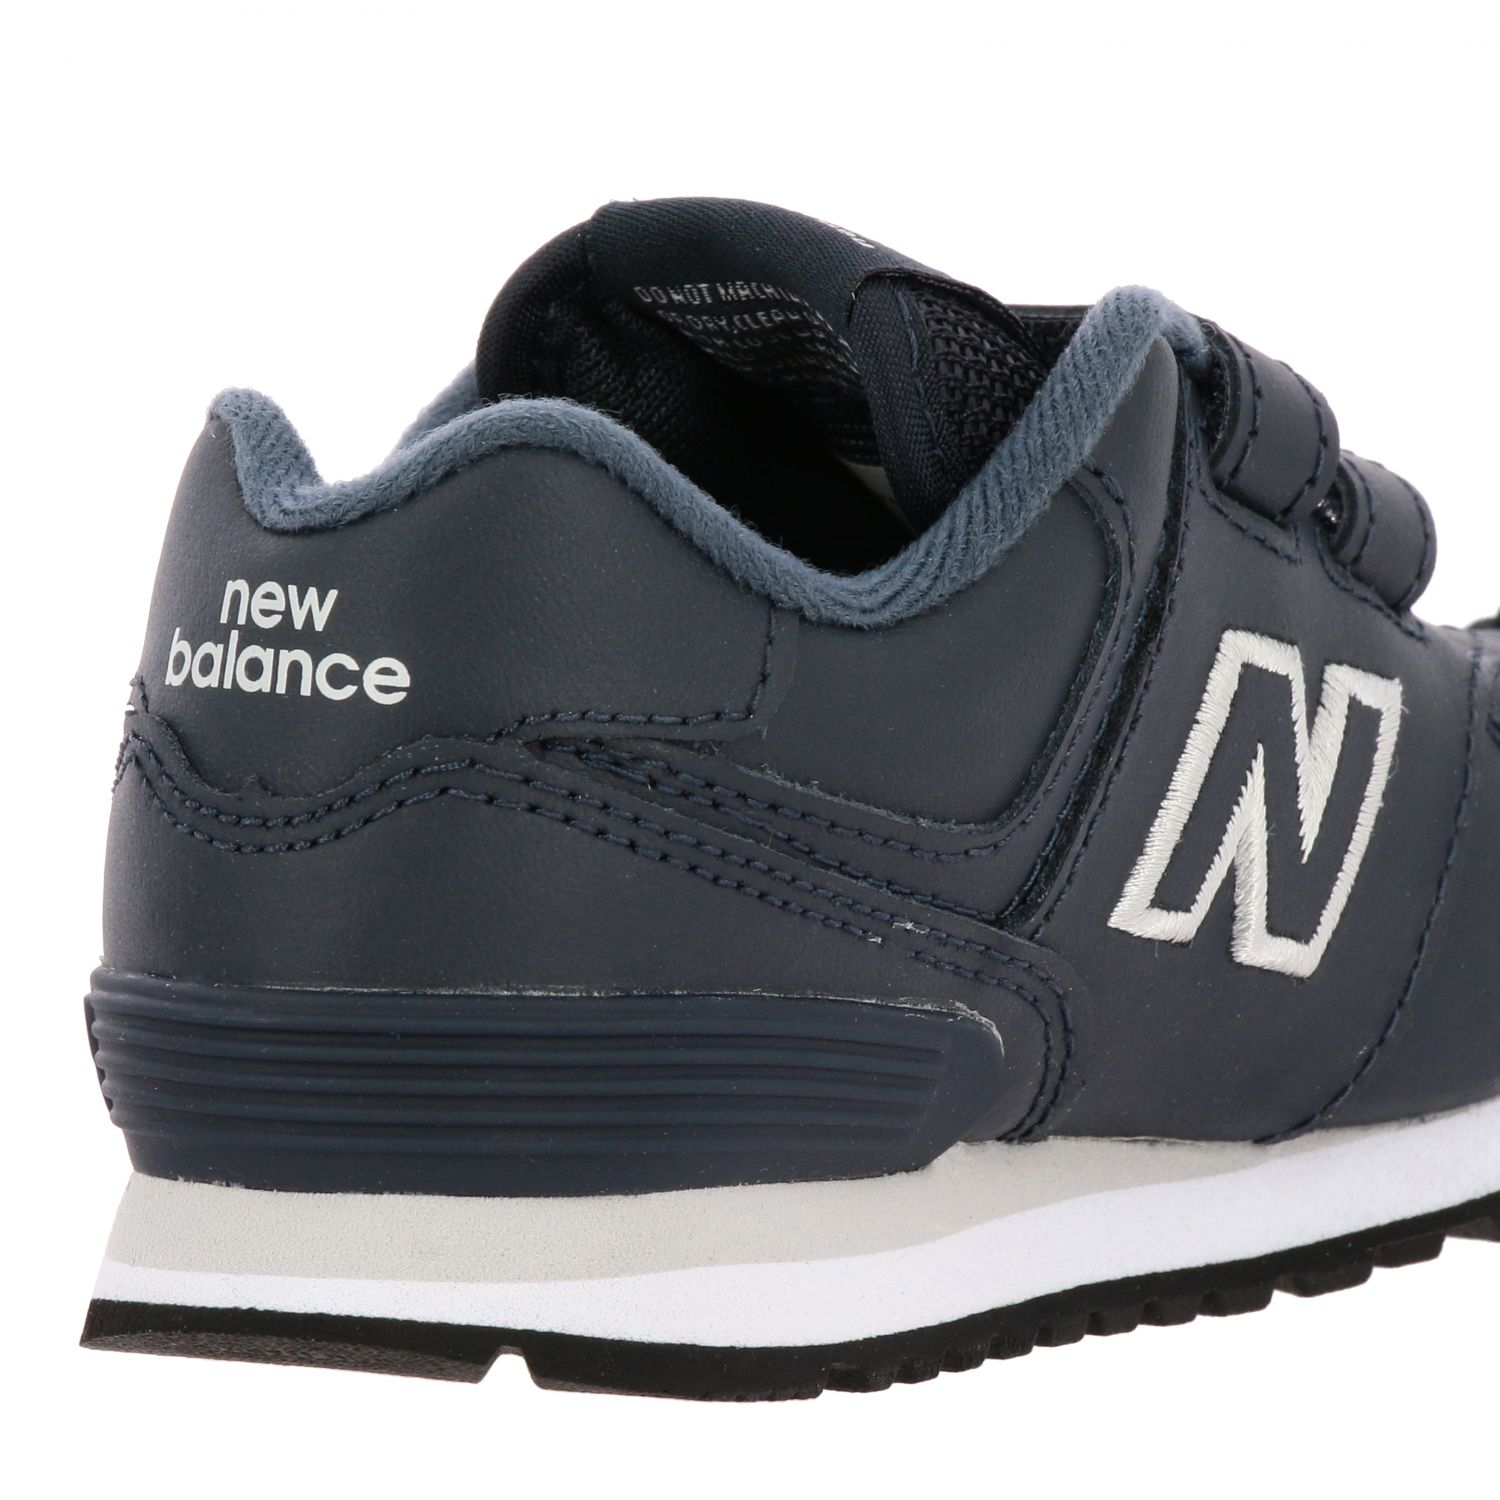 Shoes kids New Balance blue 5